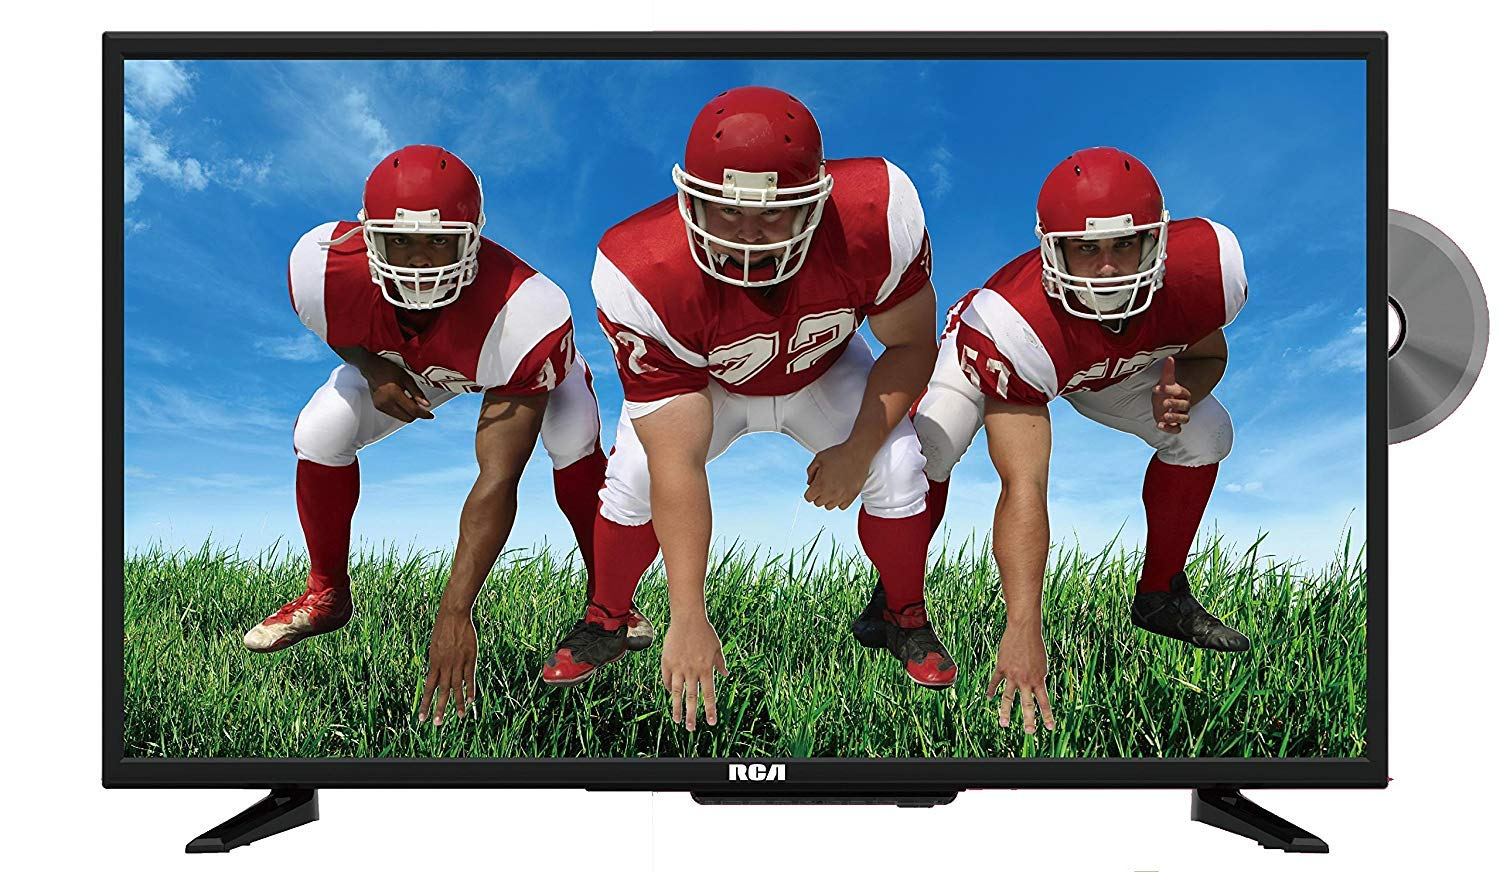 RCA 19-Inch Class LED HDTV and DVD Combo (Renewed)